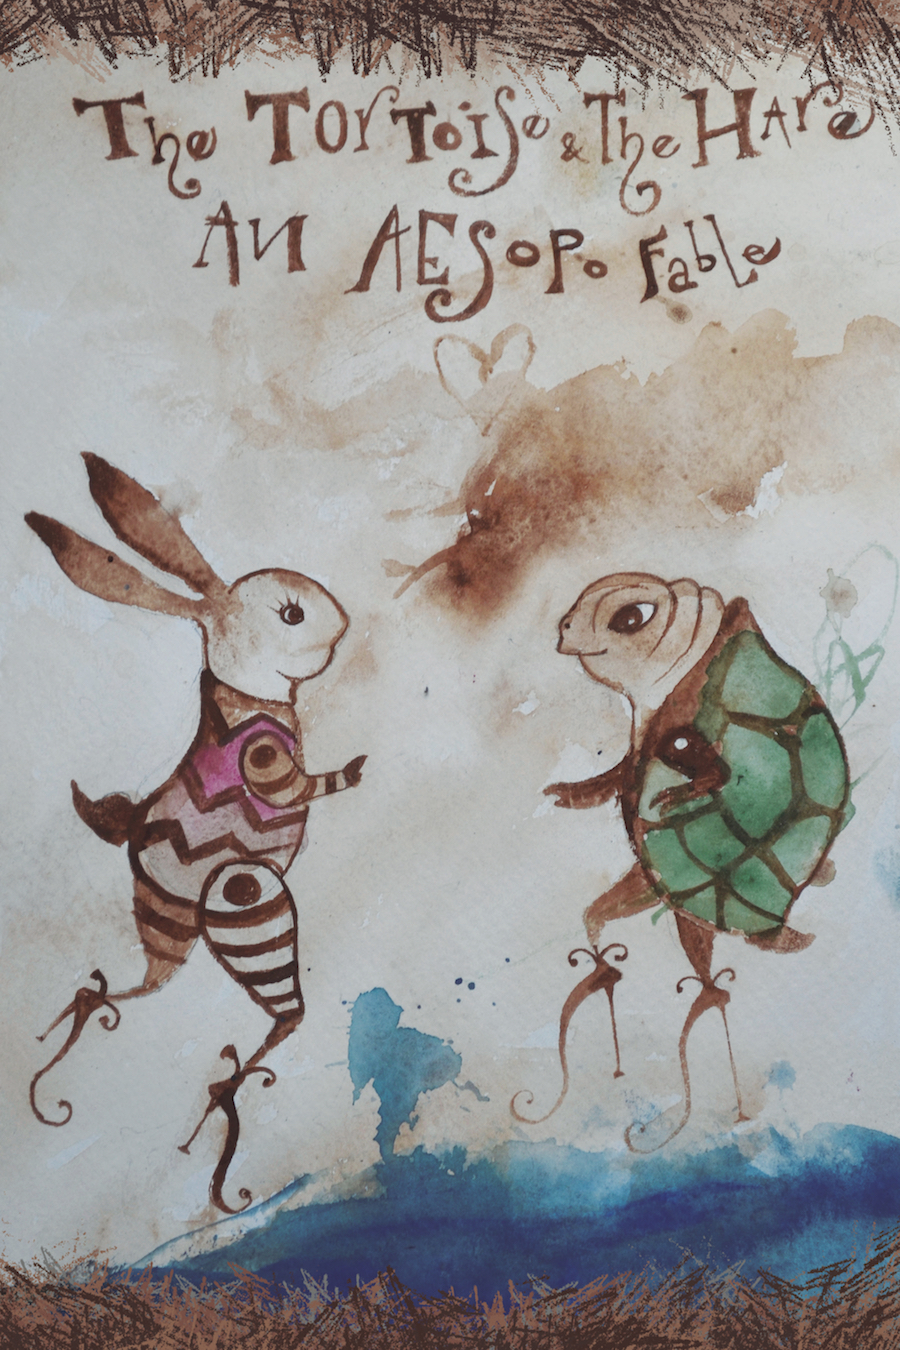 Beethoven Tortoise and Hare Luis Macias